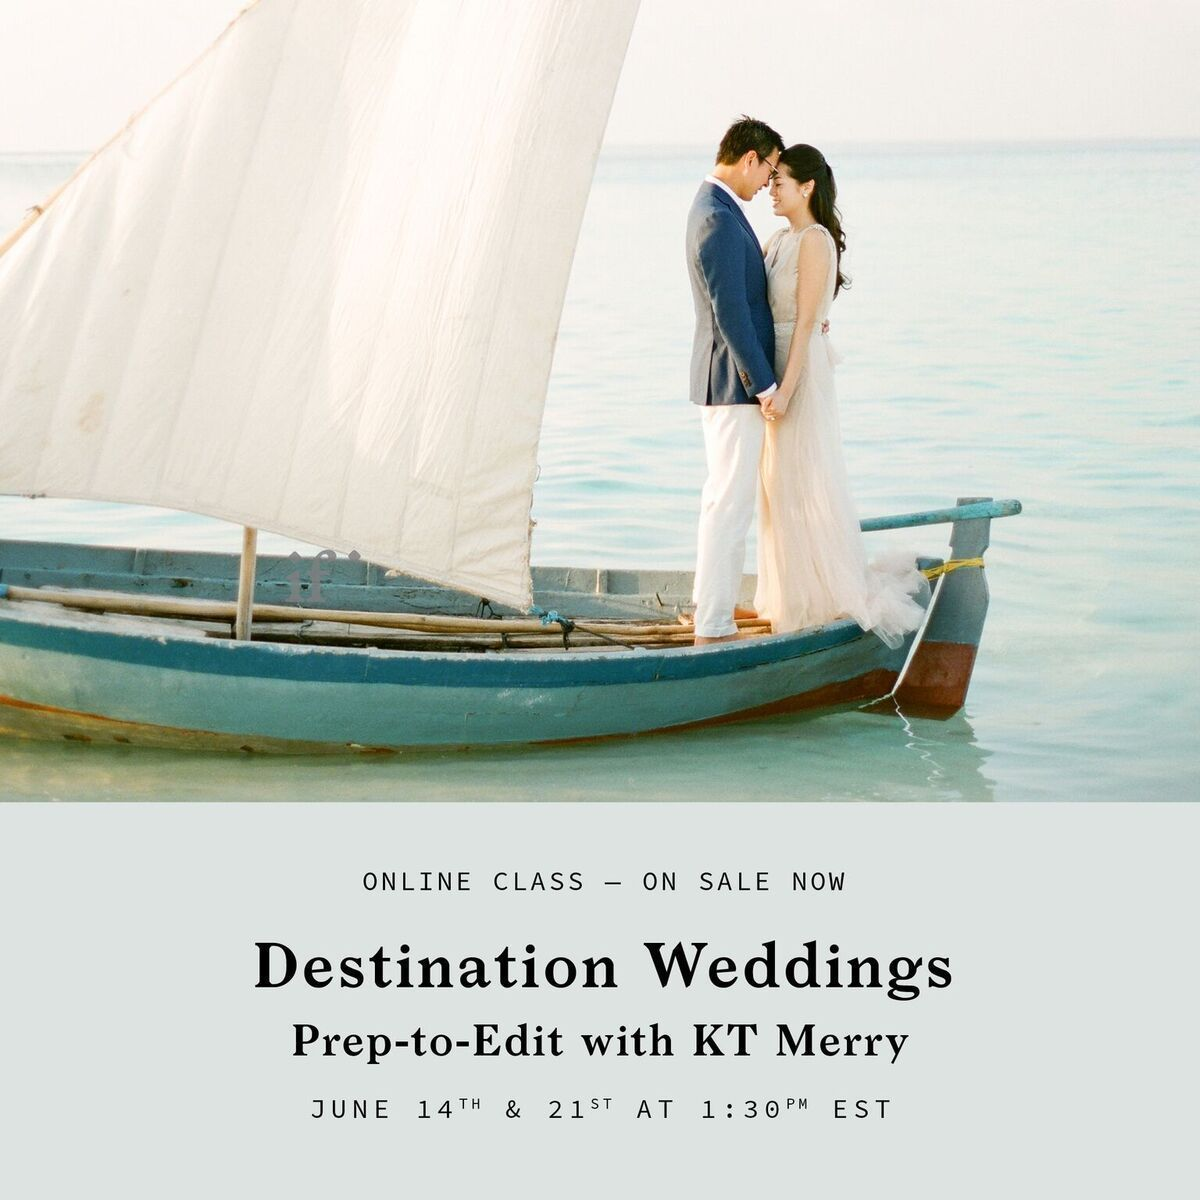 Learn Destination Wedding Photography Skills from KT Merry